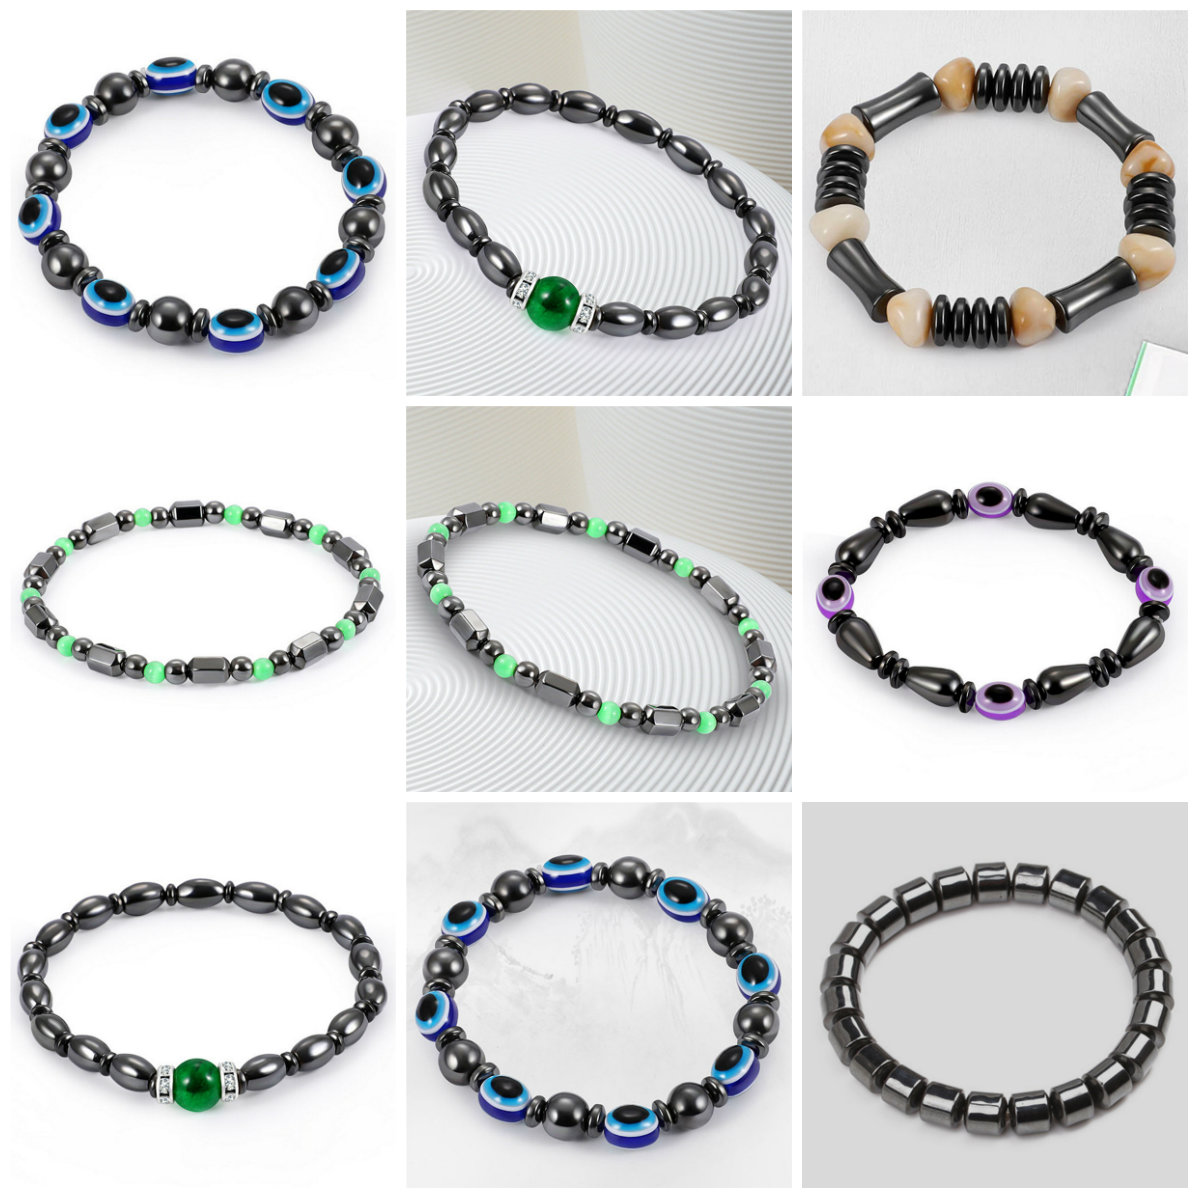 Colorful Bracelet Hematite Magnetic Weight Loss Slimming Bangles Black Gallstone Acupoint Massage Health Care Accessories